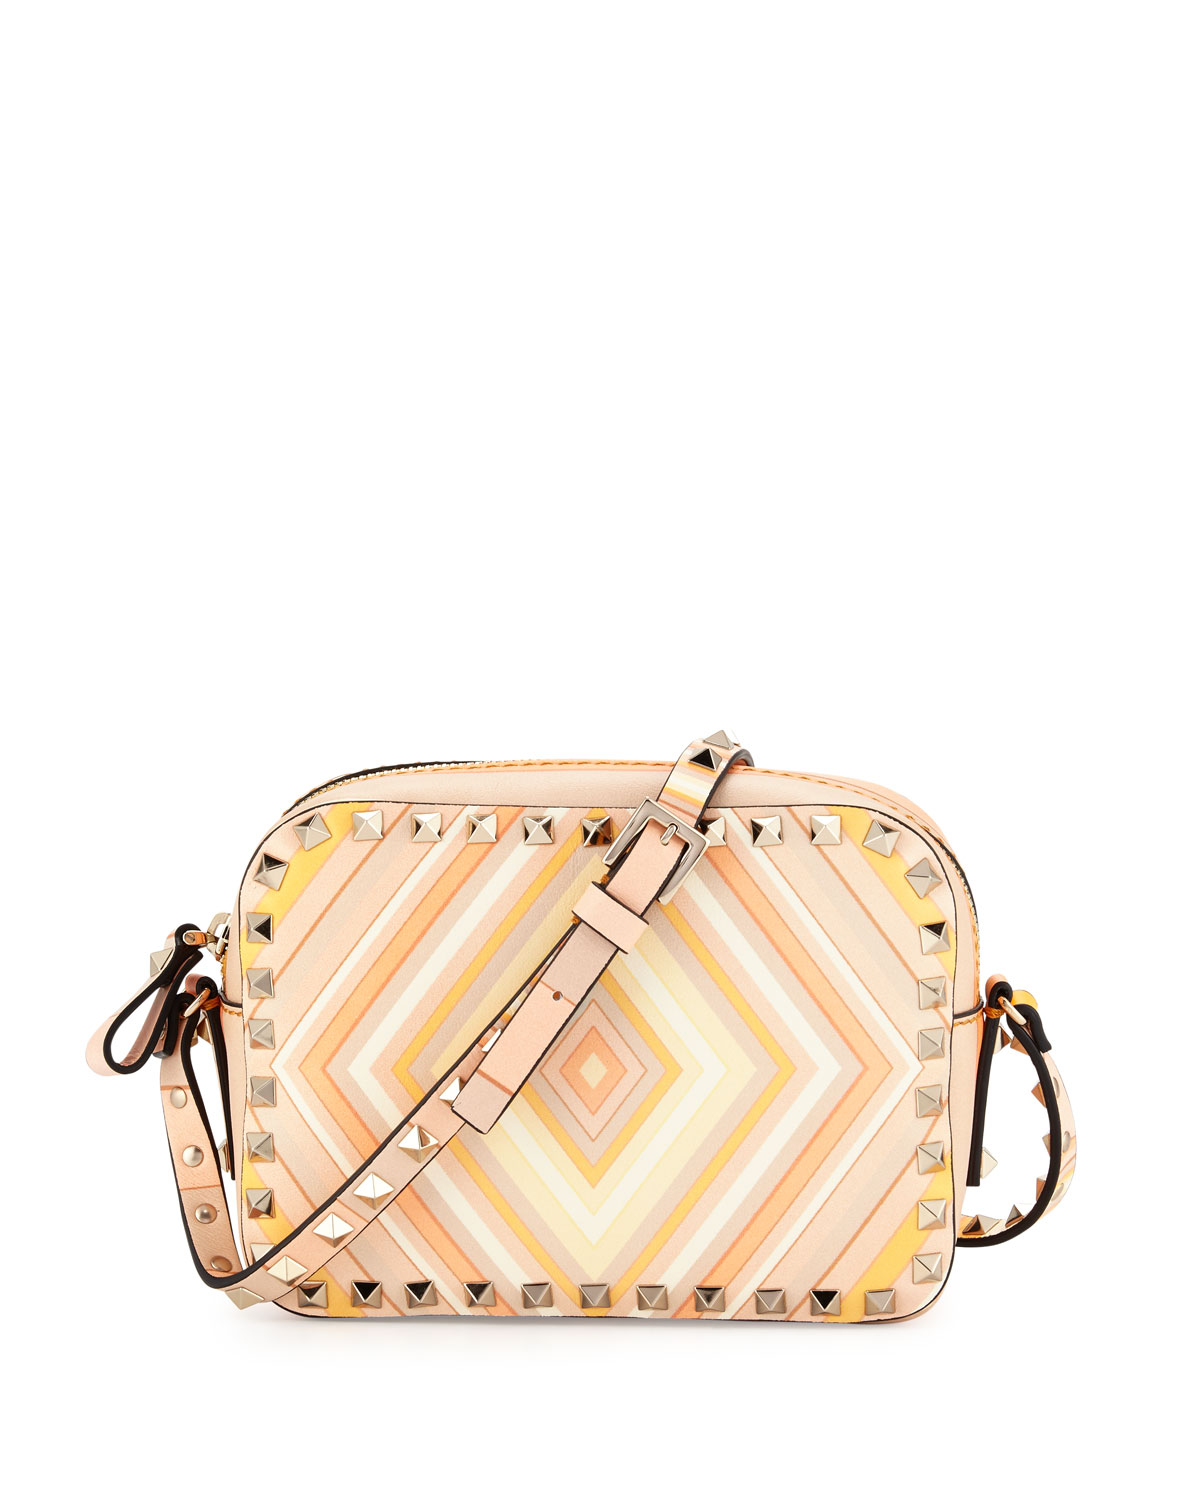 Red Valentino Rockstud 1975 Camera Crossbody Bag, Orange/Multi, Orange Multi